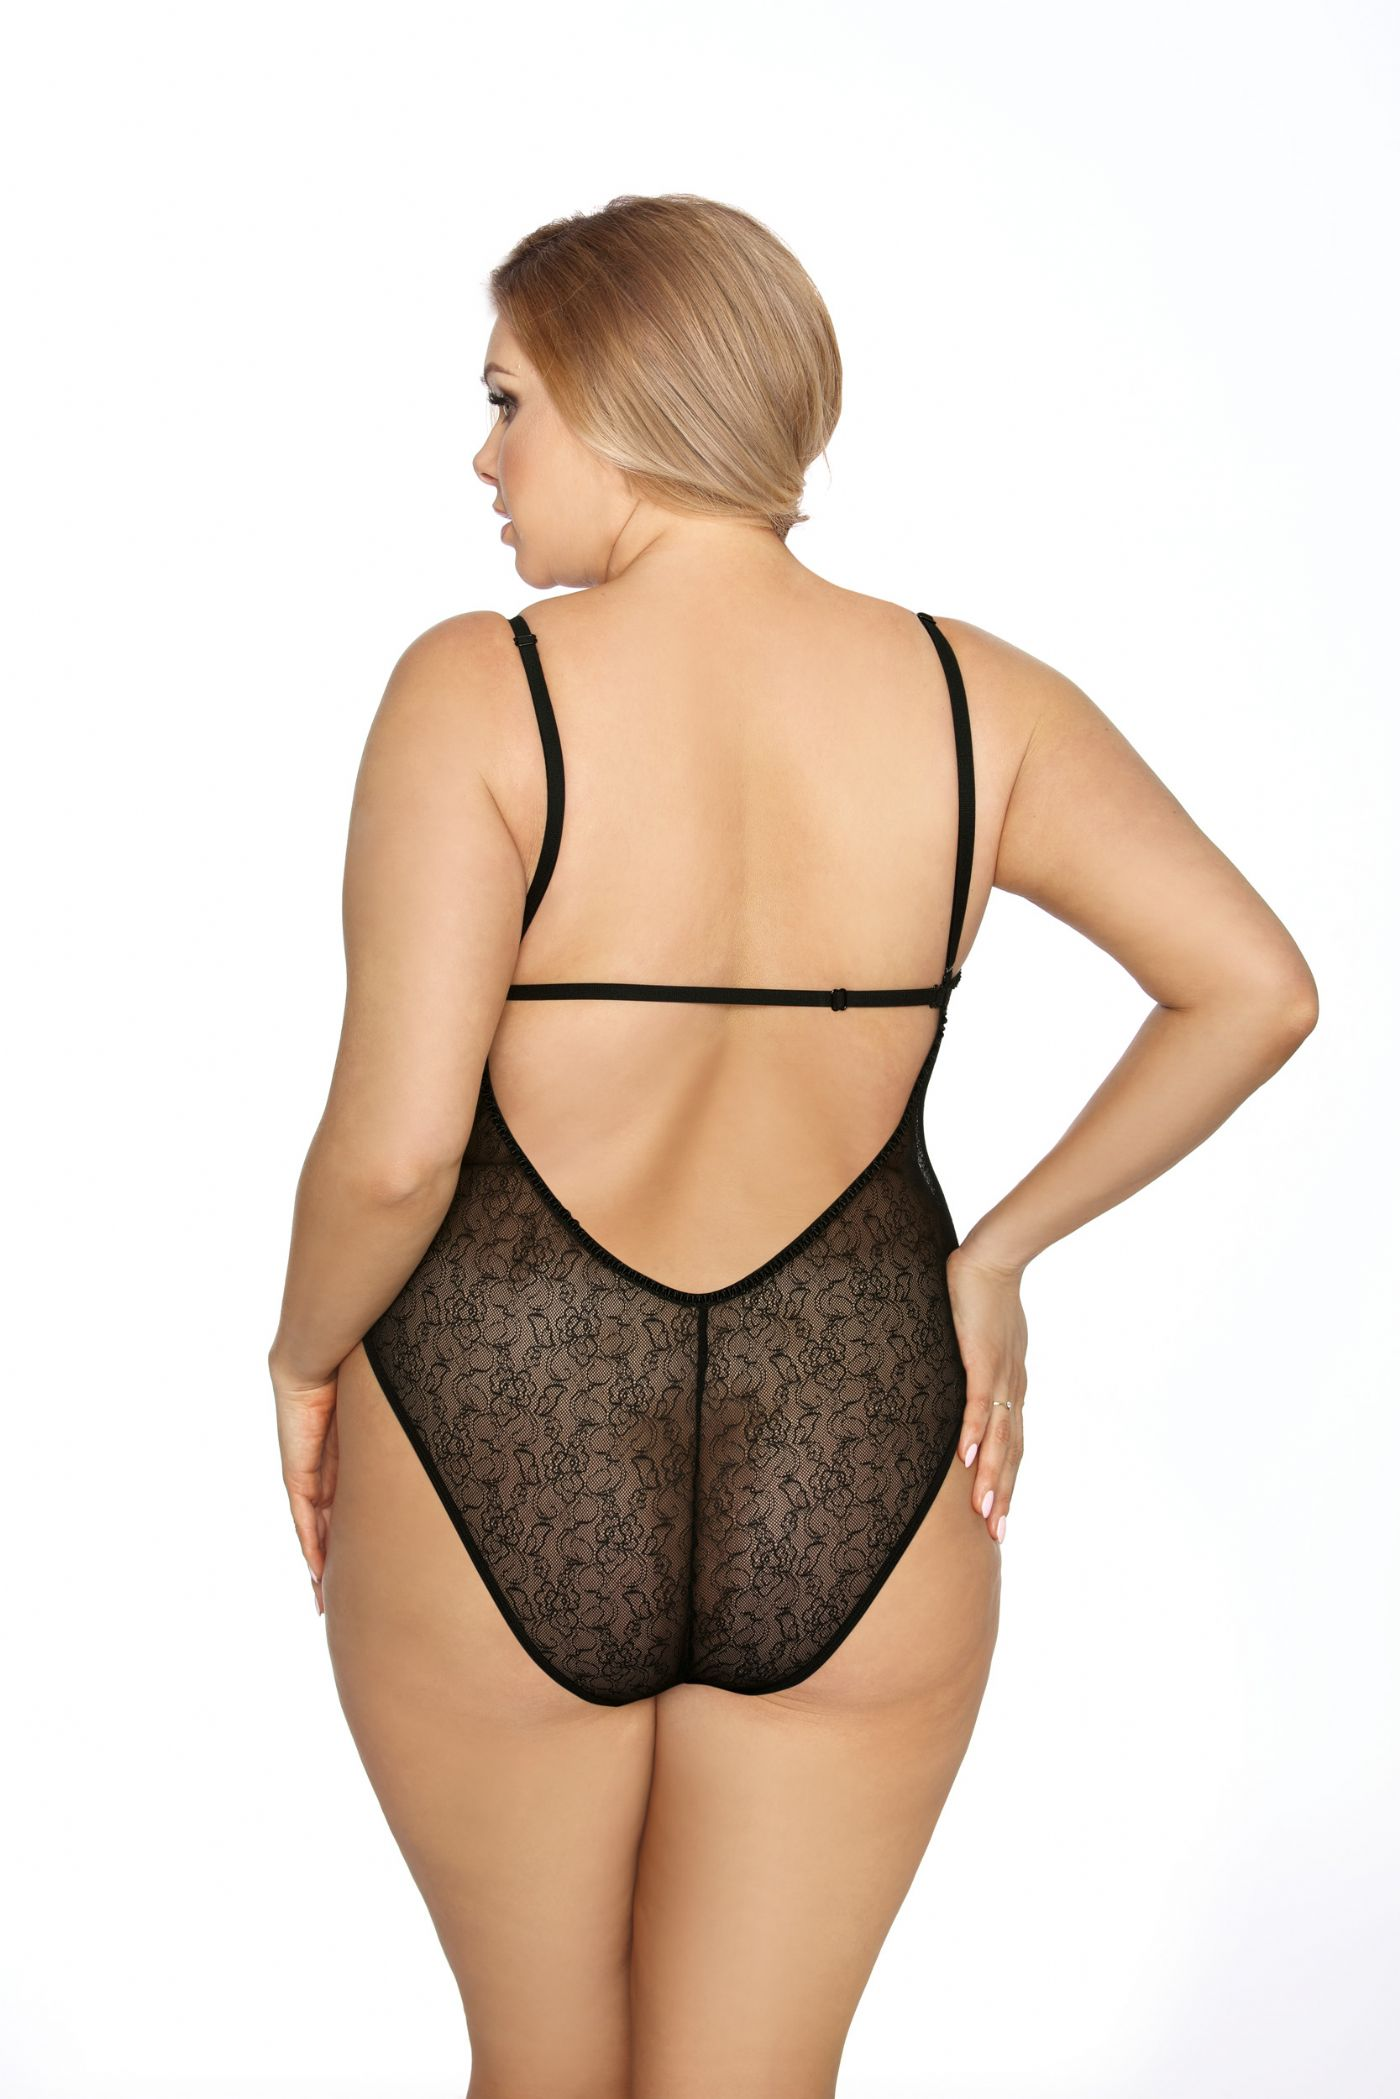 Iona Lace Body - Queen